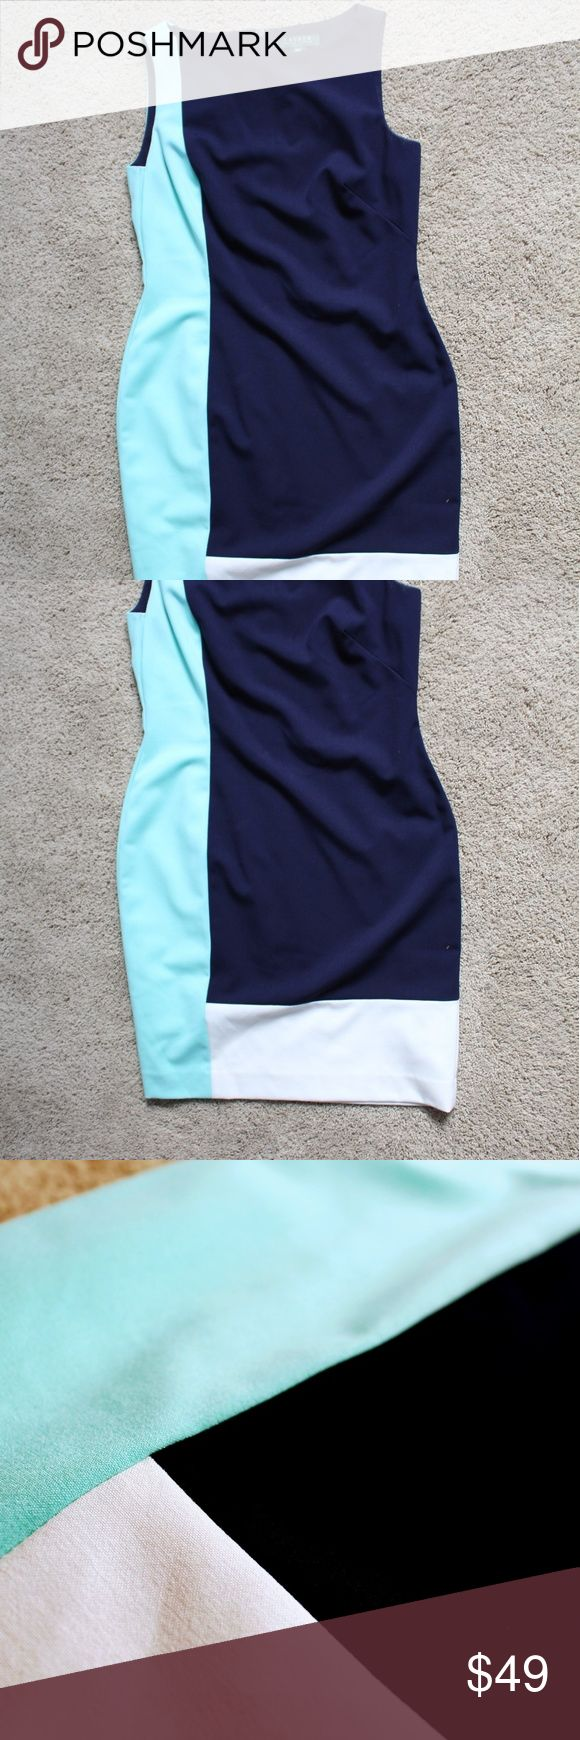 RALPH LAUREN Colorblock Dress Perfect for work. Navy, light blue, and white colorblocking. Fabric has slight stretch. No signs of wear. Ralph Lauren Dresses